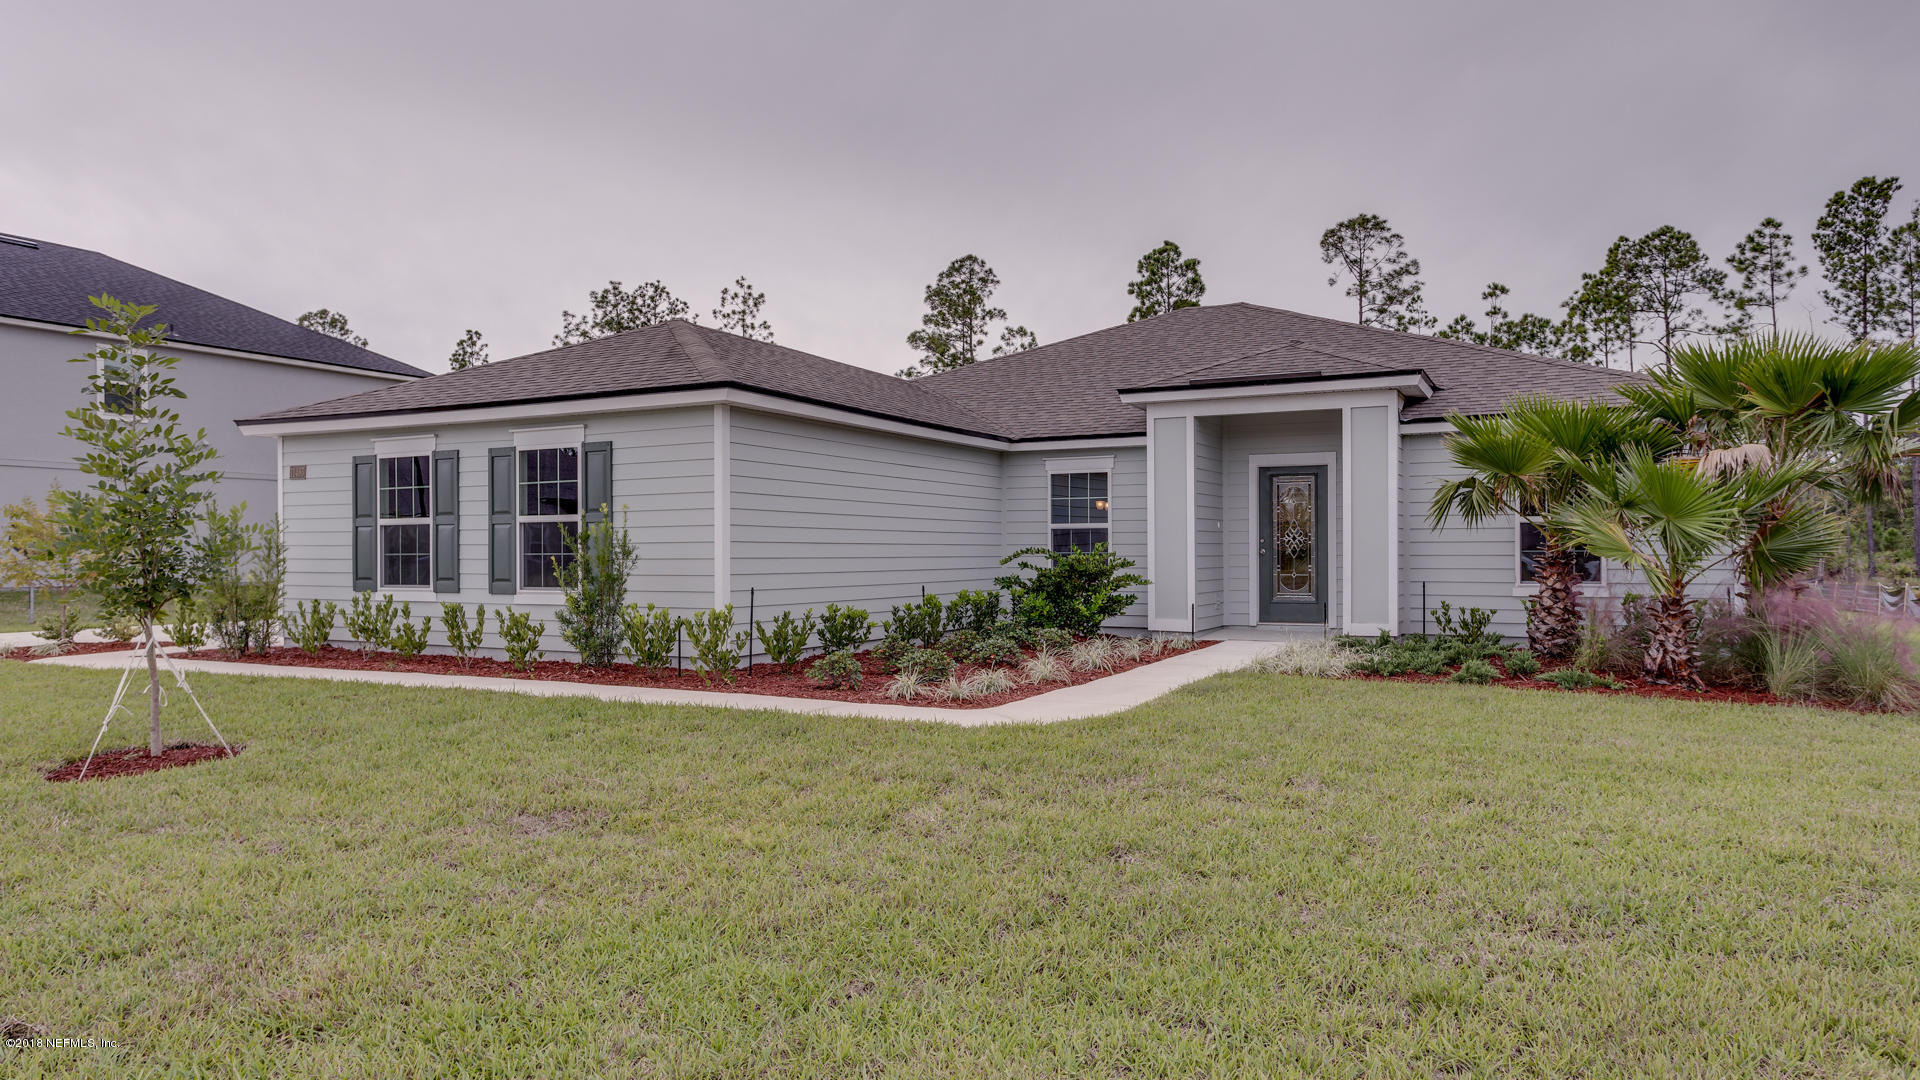 11485 PACEYS POND, JACKSONVILLE, FLORIDA 32222, 4 Bedrooms Bedrooms, ,2 BathroomsBathrooms,Residential - single family,For sale,PACEYS POND,945352